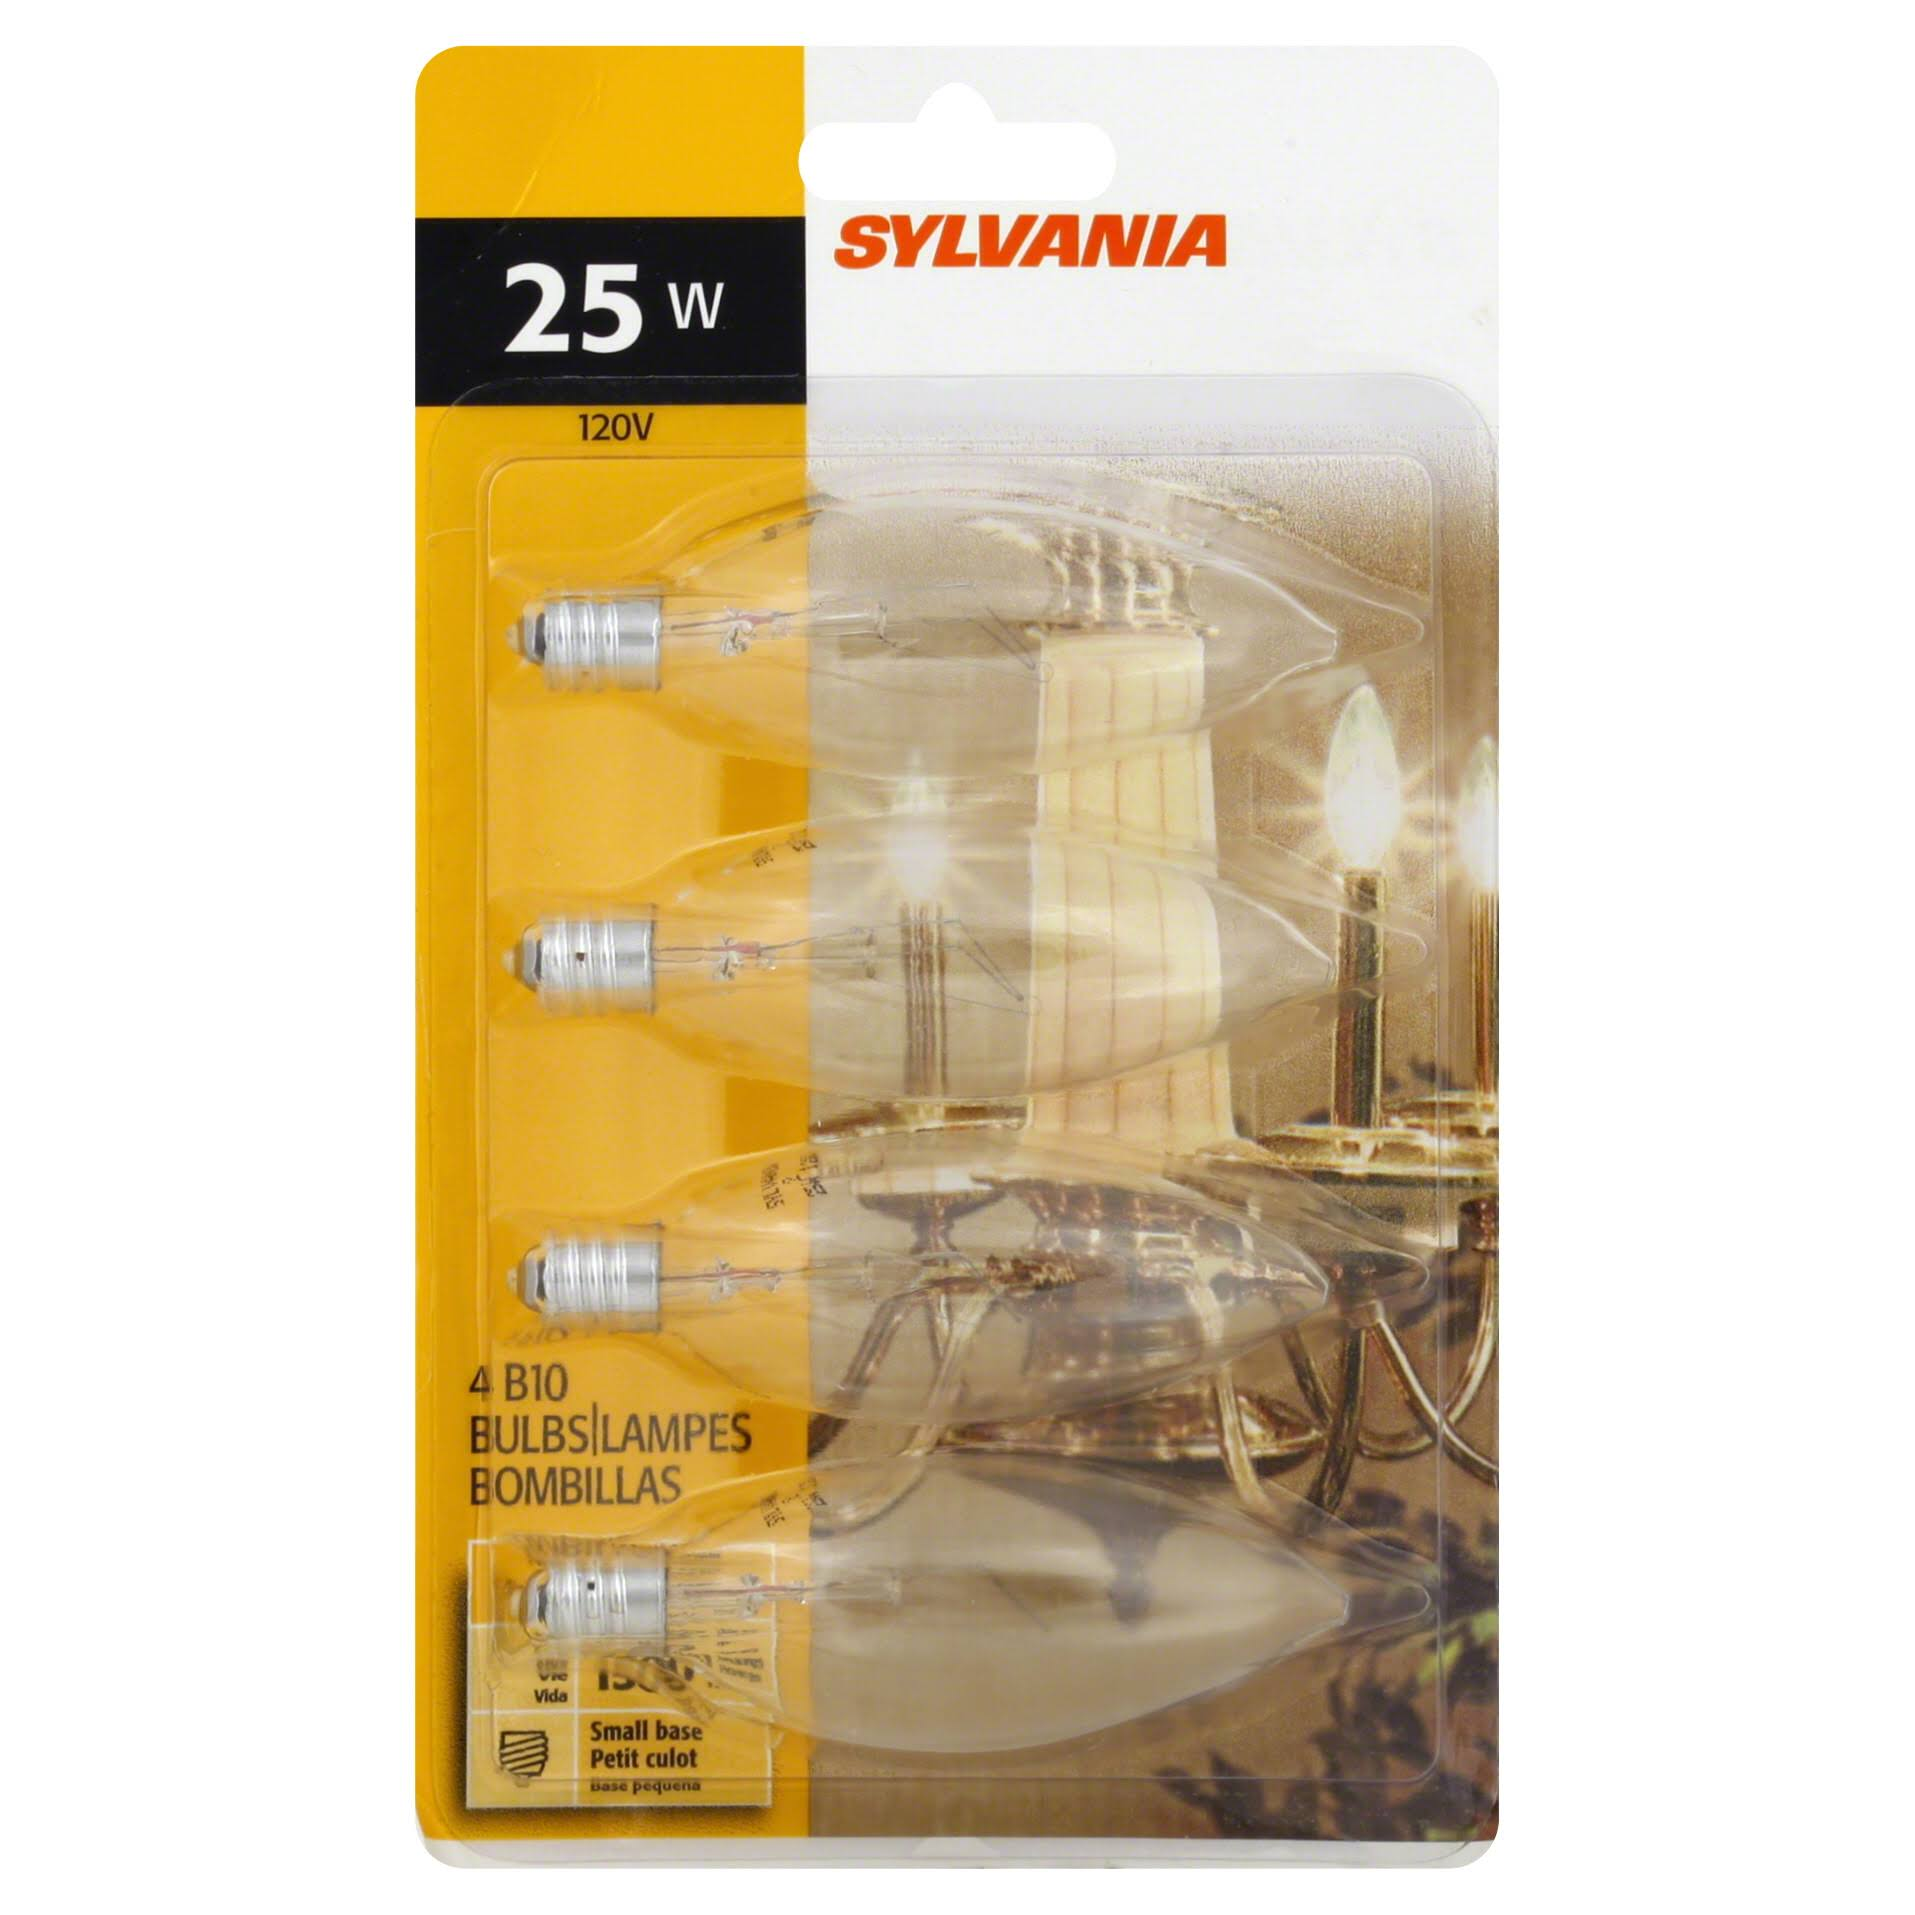 Sylvania B10 Light Bulbs, B10, Clear, 25 W - 4 bulbs